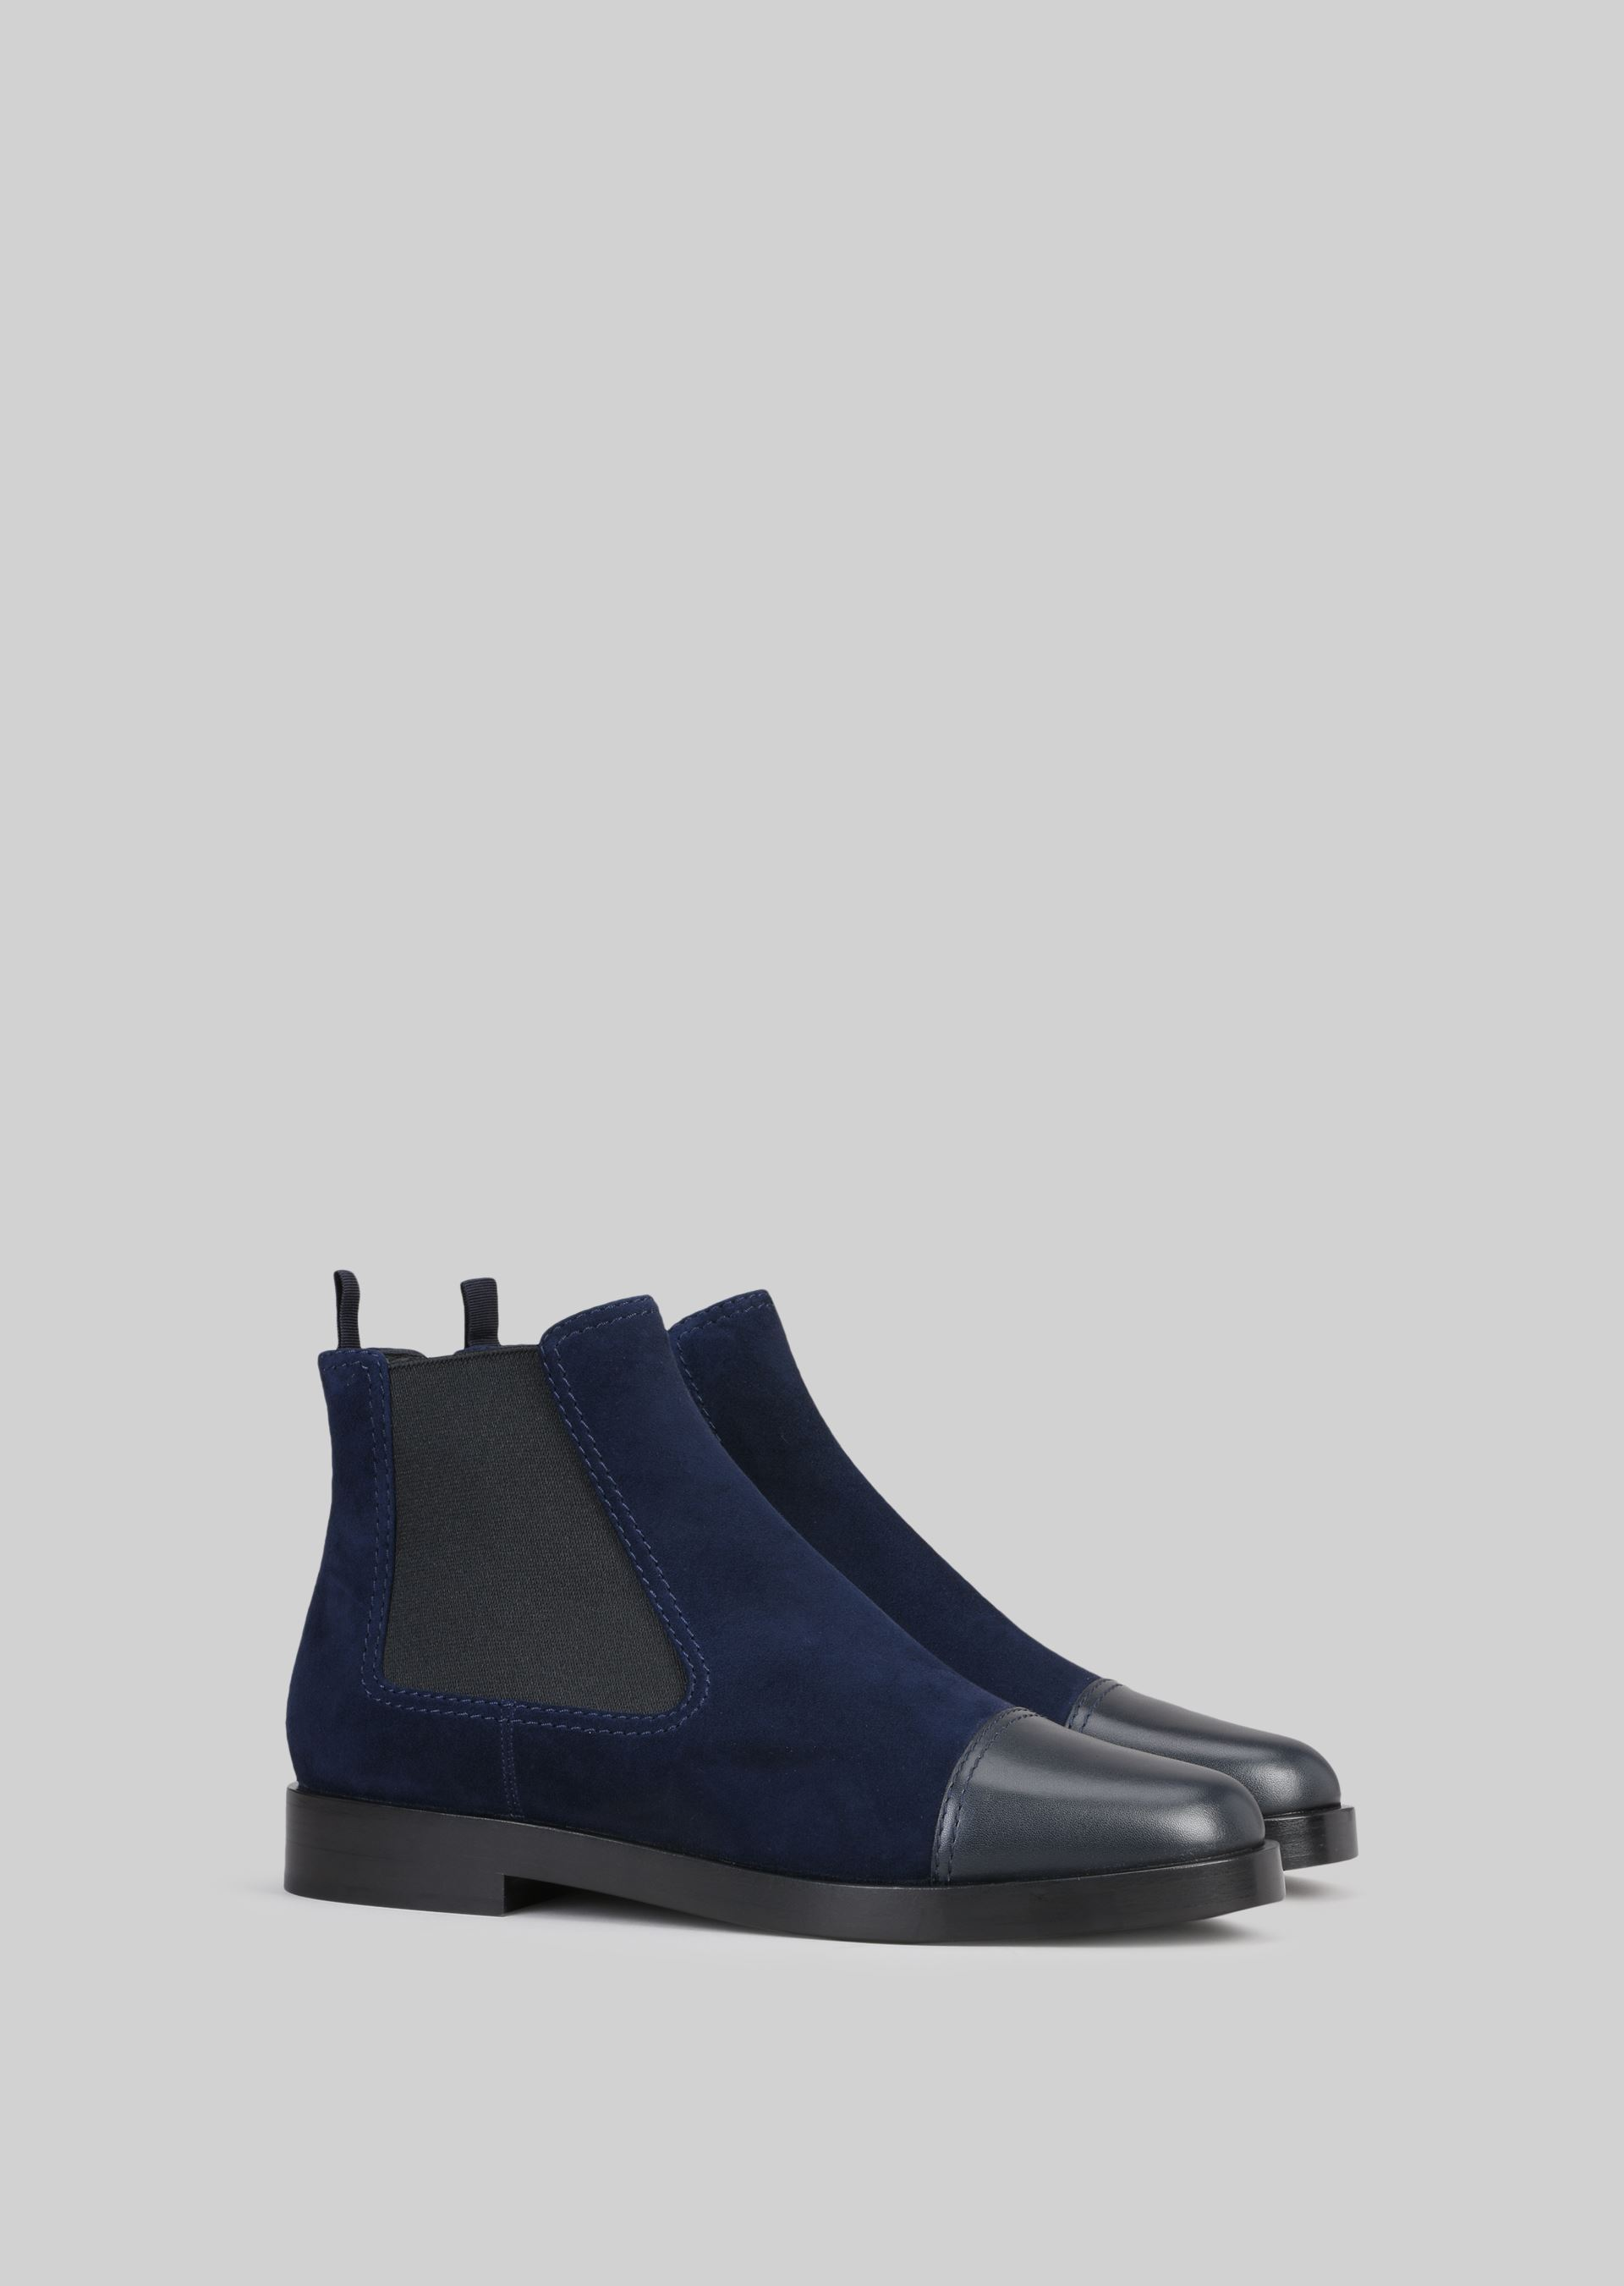 GIORGIO ARMANI SUEDE BEATLE BOOTS Ankle Boots D r